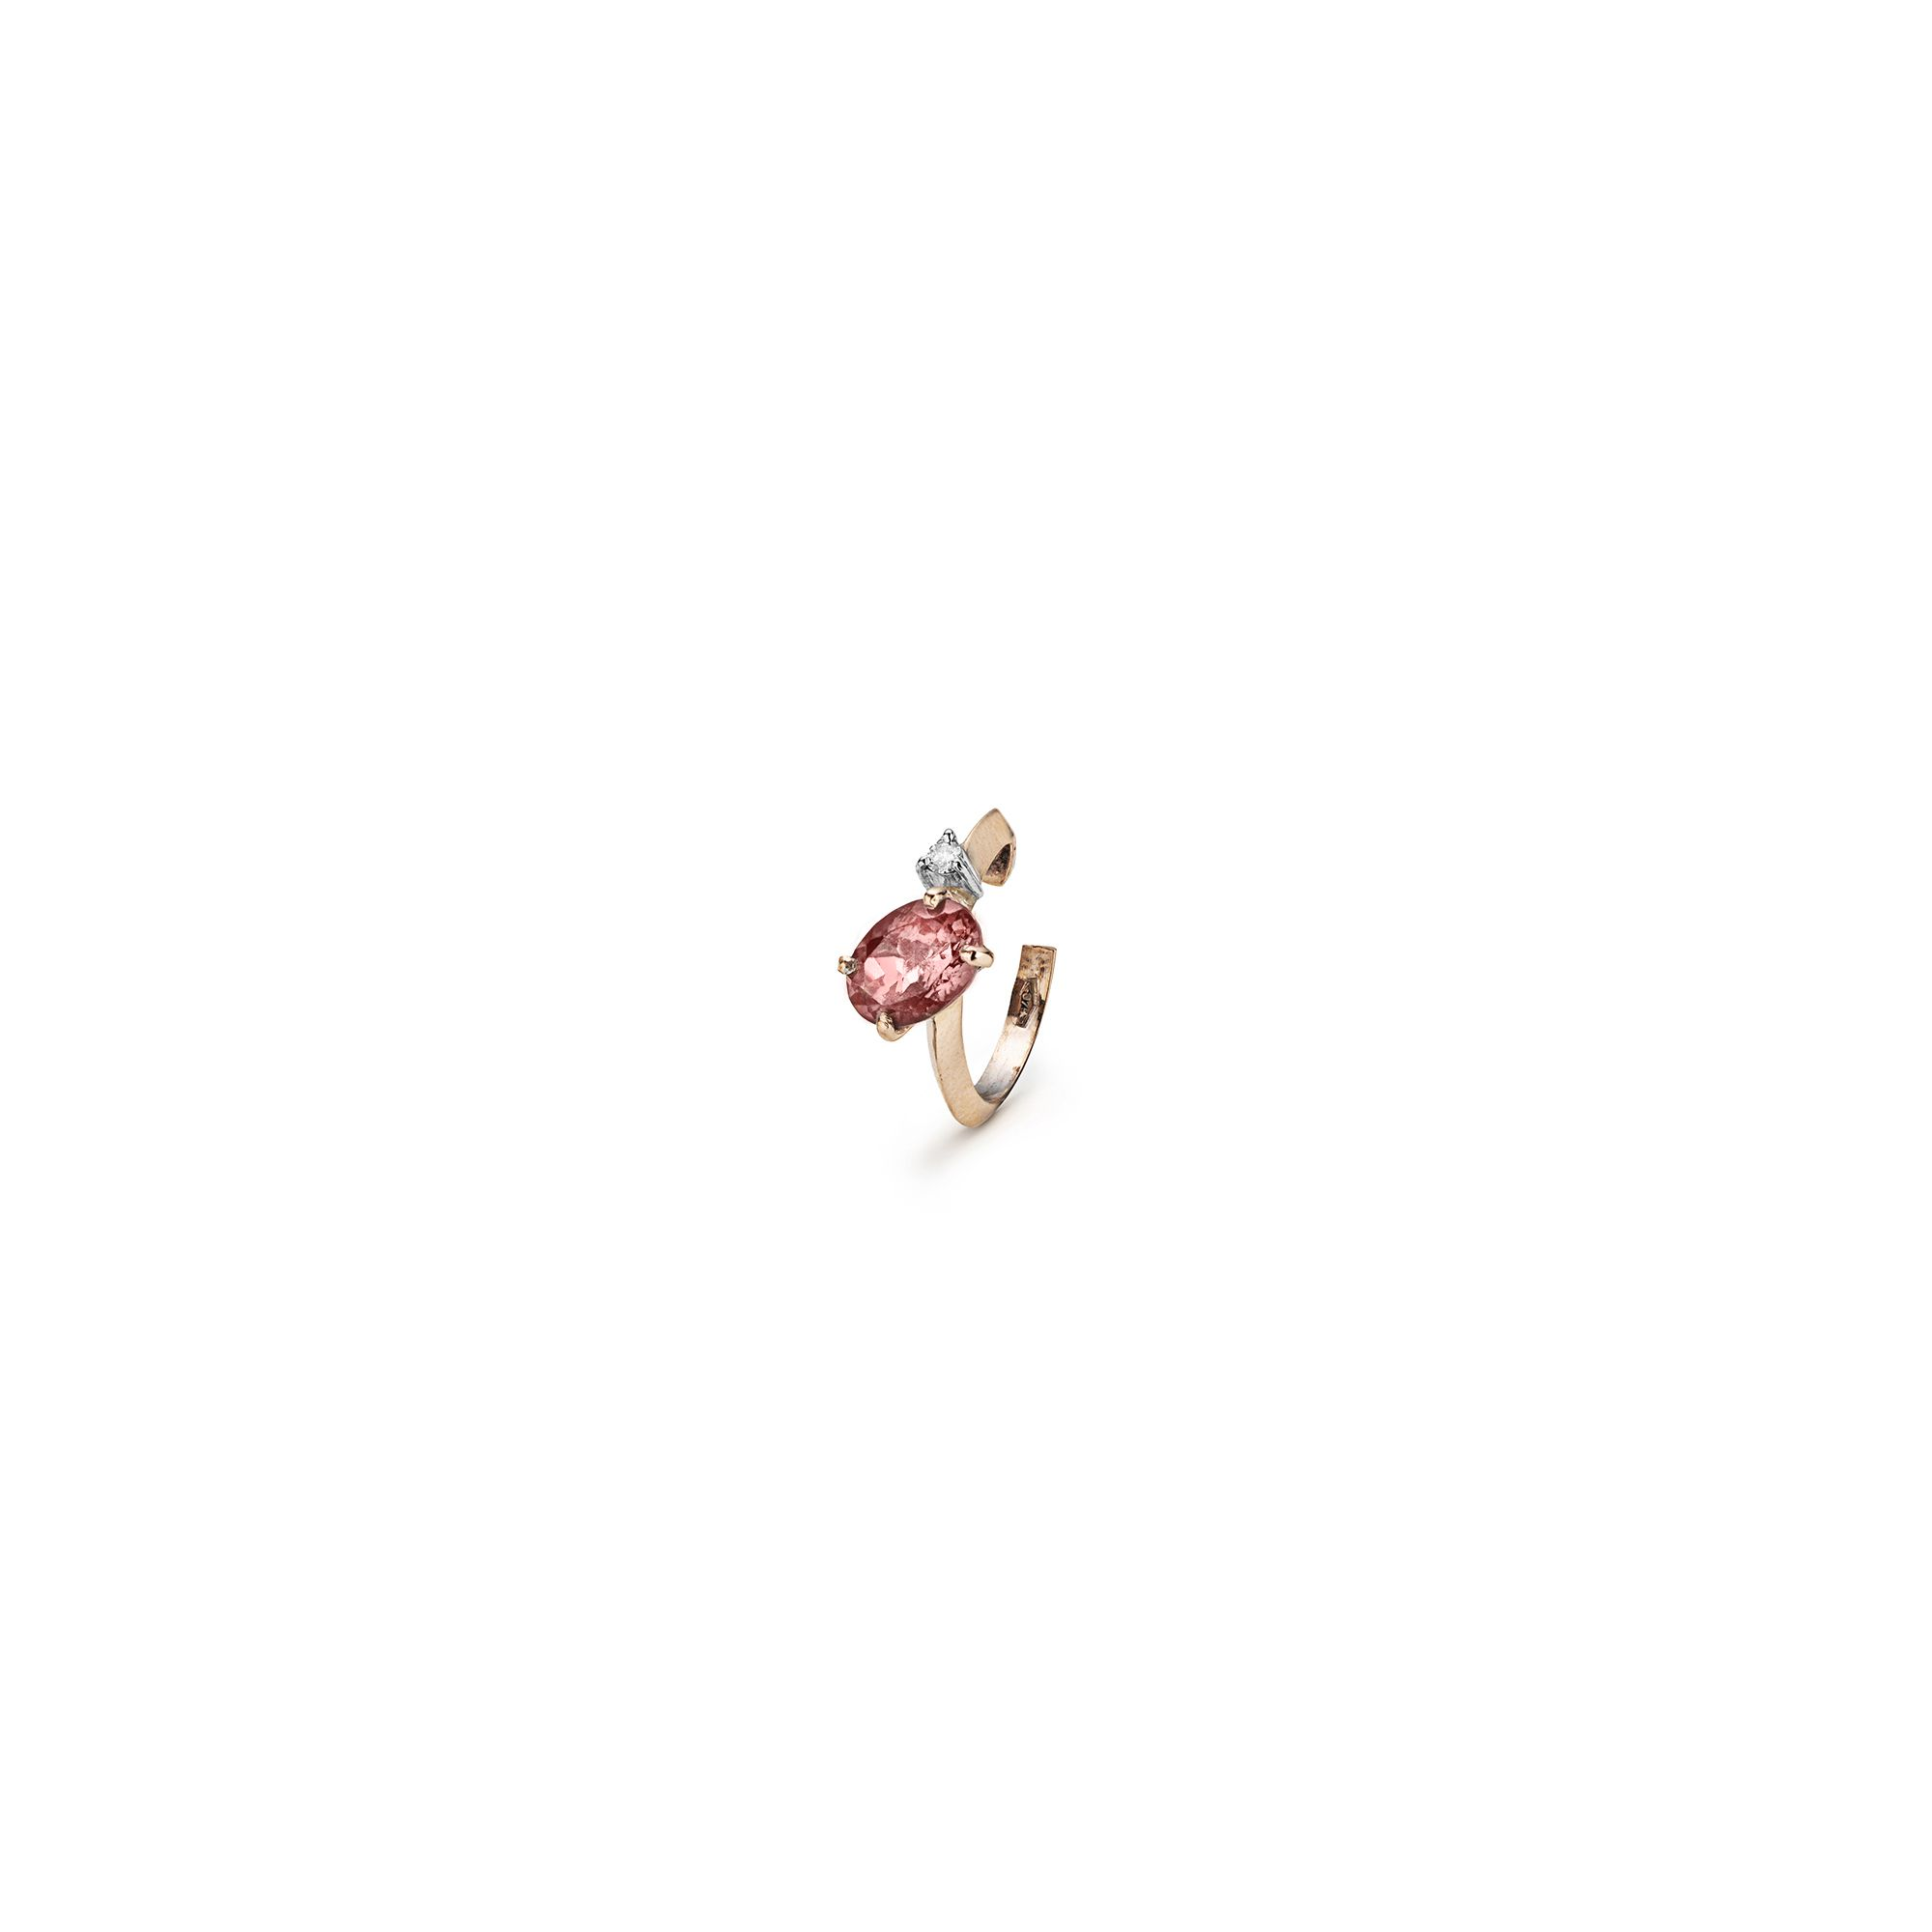 Tourmaline 'Balance' cuff earring Rose gold cartilage earring with pink tourmaline and diamonds